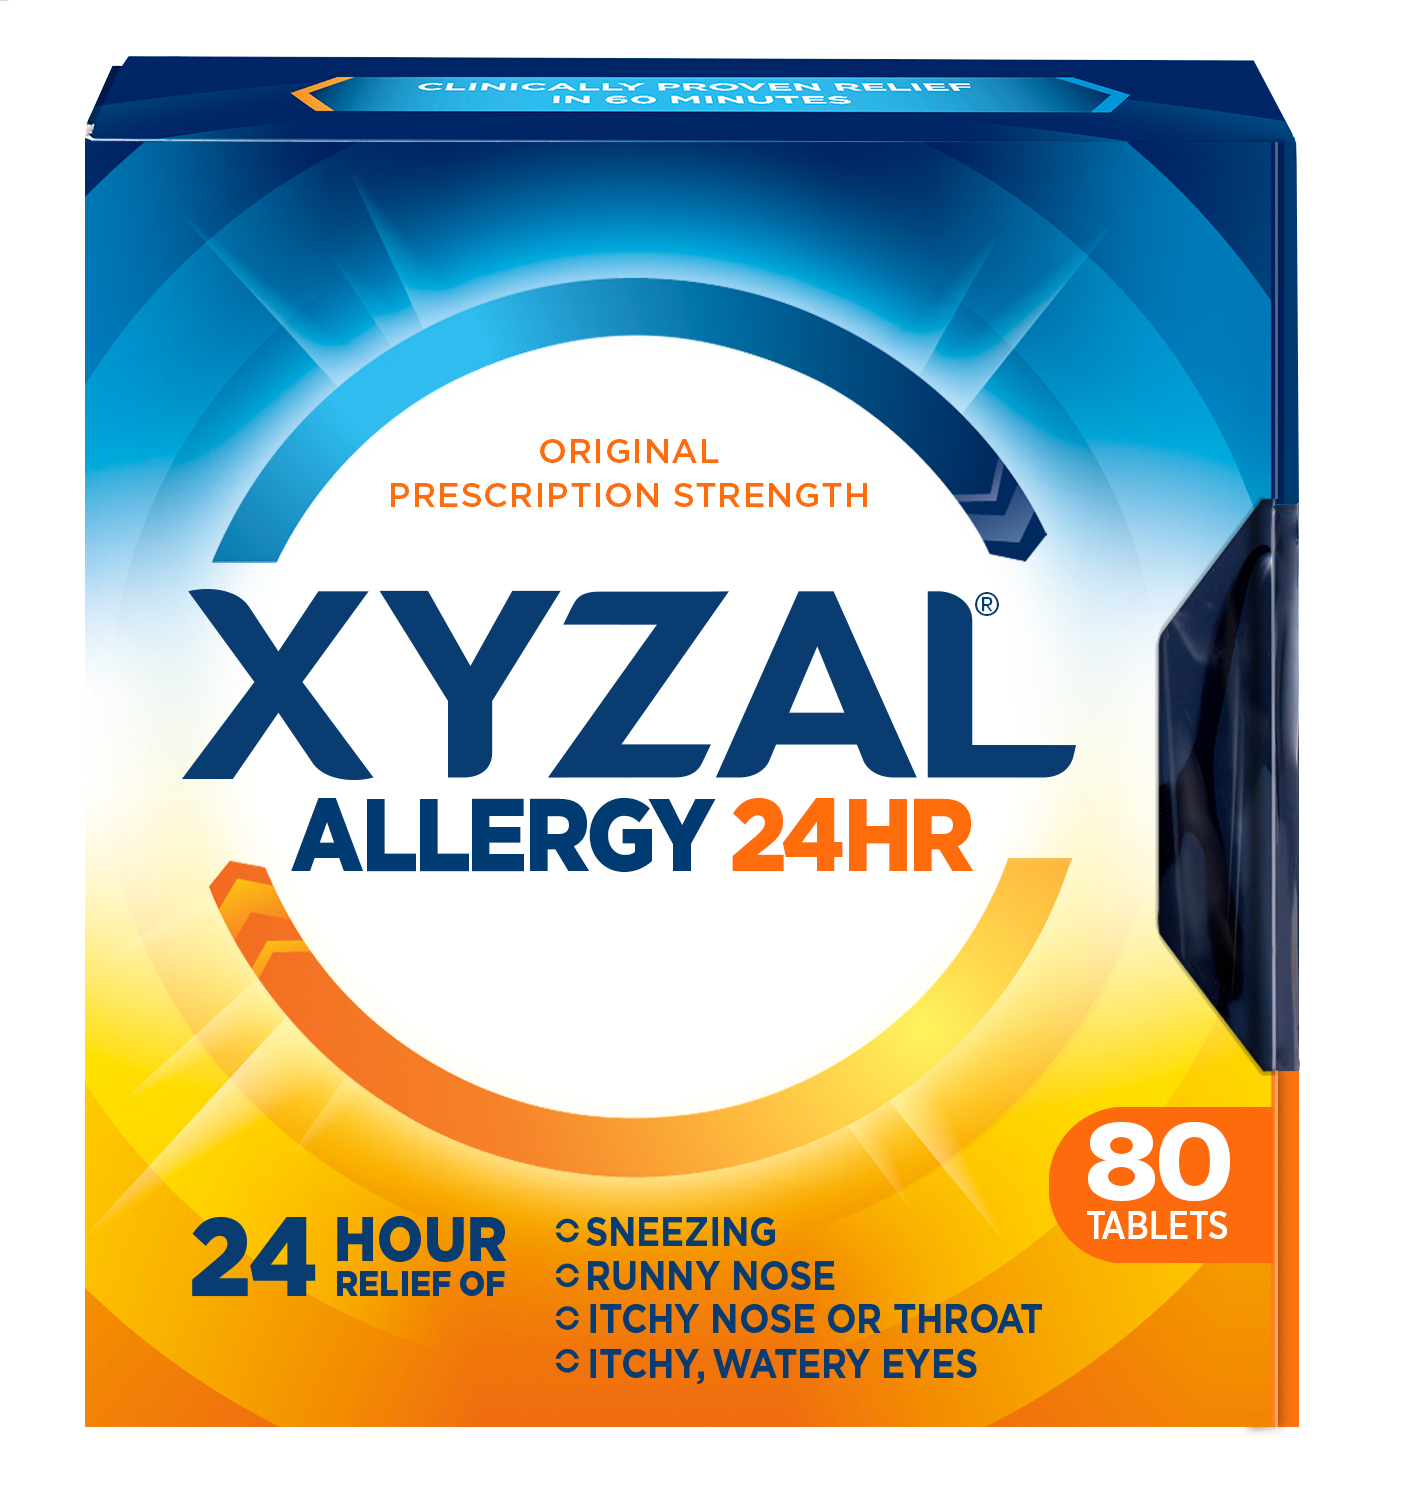 Xyzal 24 Hour Allergy Relief Tablets, 80ct